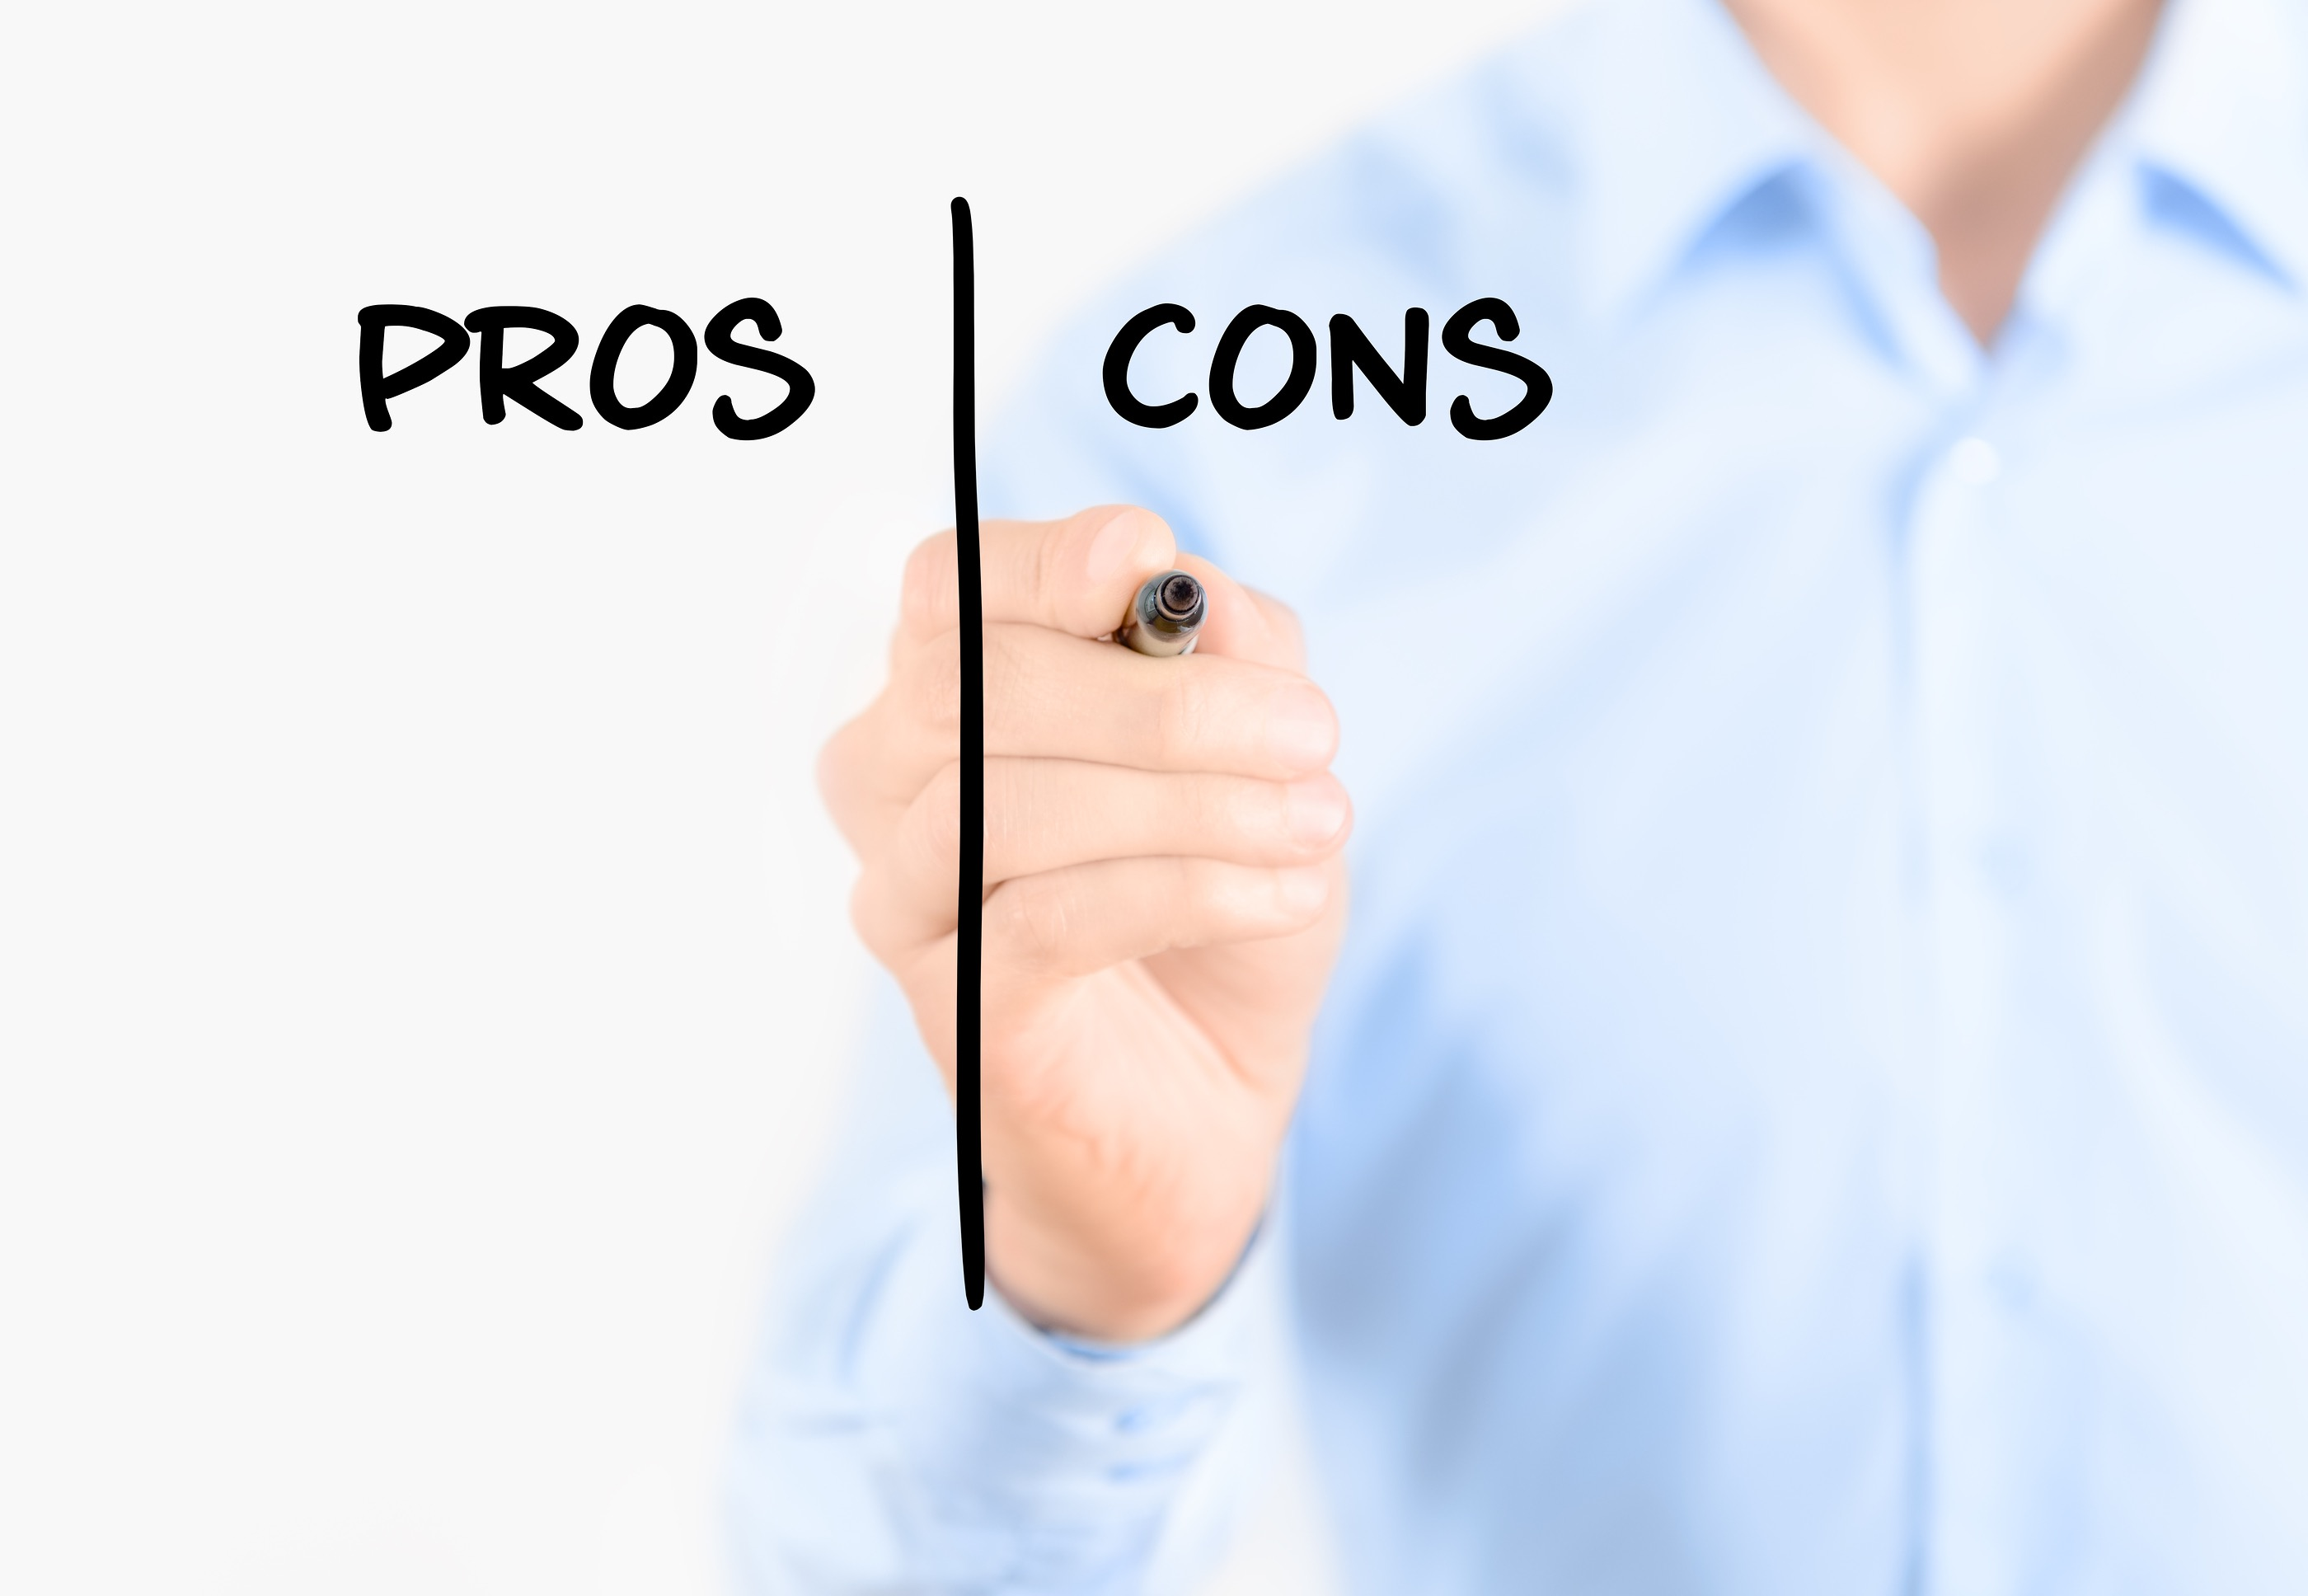 analysis pro vs con Transcript of qualititative and quantitative research the pro's and con's qualitative research allows one to explore topics in more depth and detail than quantitative research  quantitative: pros one con of quantitative research is the limited ability to probe answers.